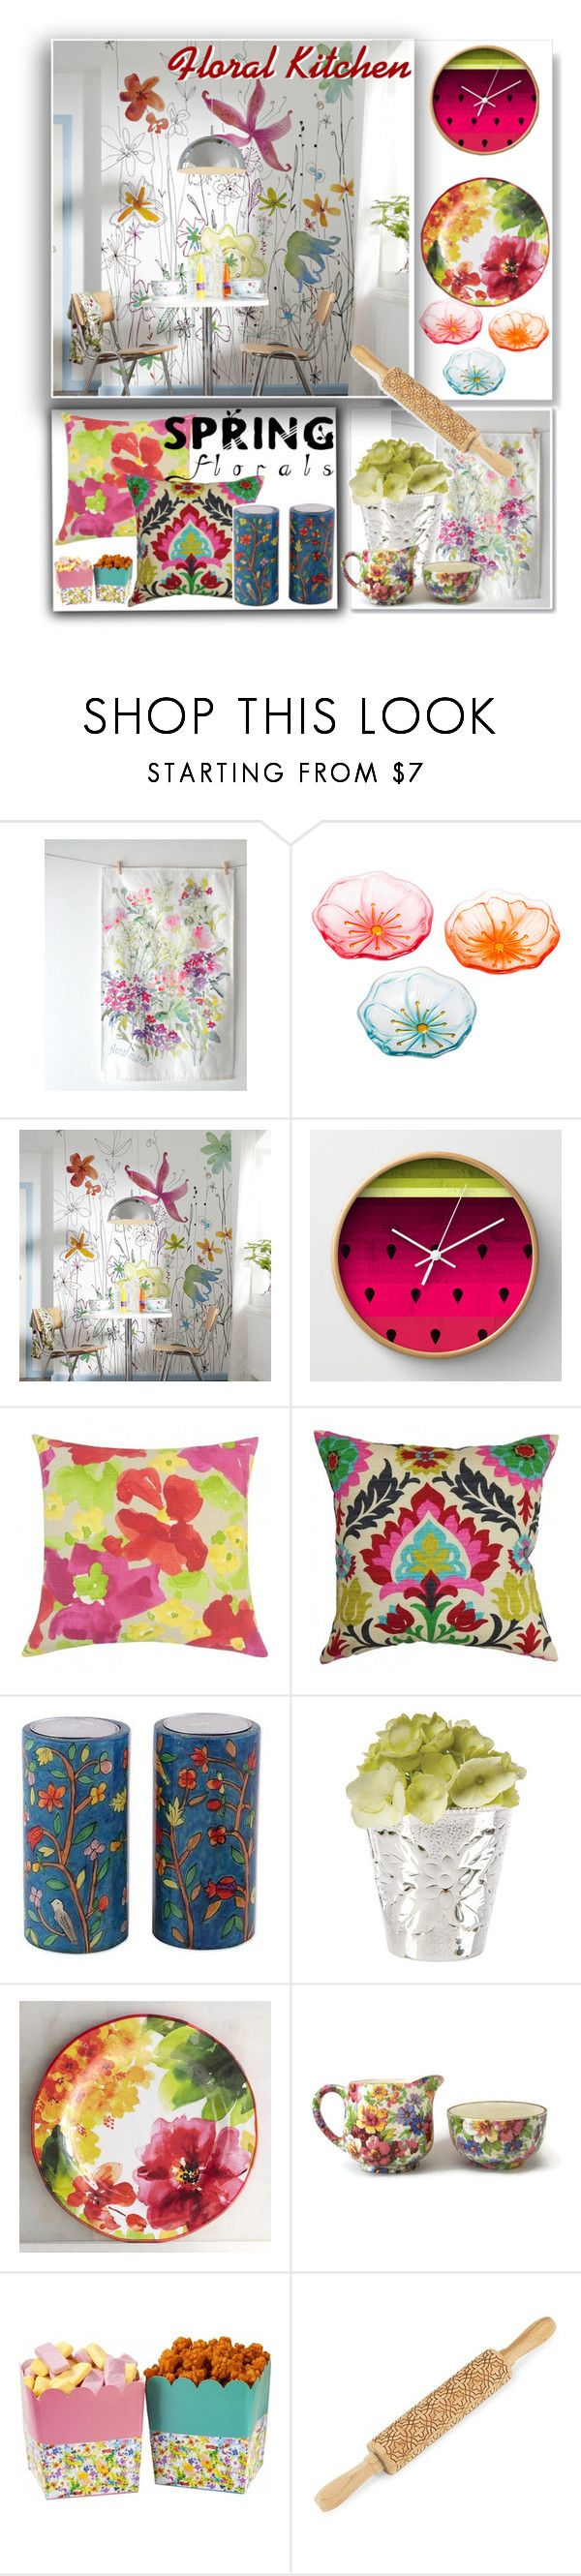 """""""Floral Kitchen"""" by fiery555 ❤ liked on Polyvore featuring interior, interiors, interior design, home, home decor, interior decorating, Cypress Home, NOVICA, Pier 1 Imports and Talking Tables"""